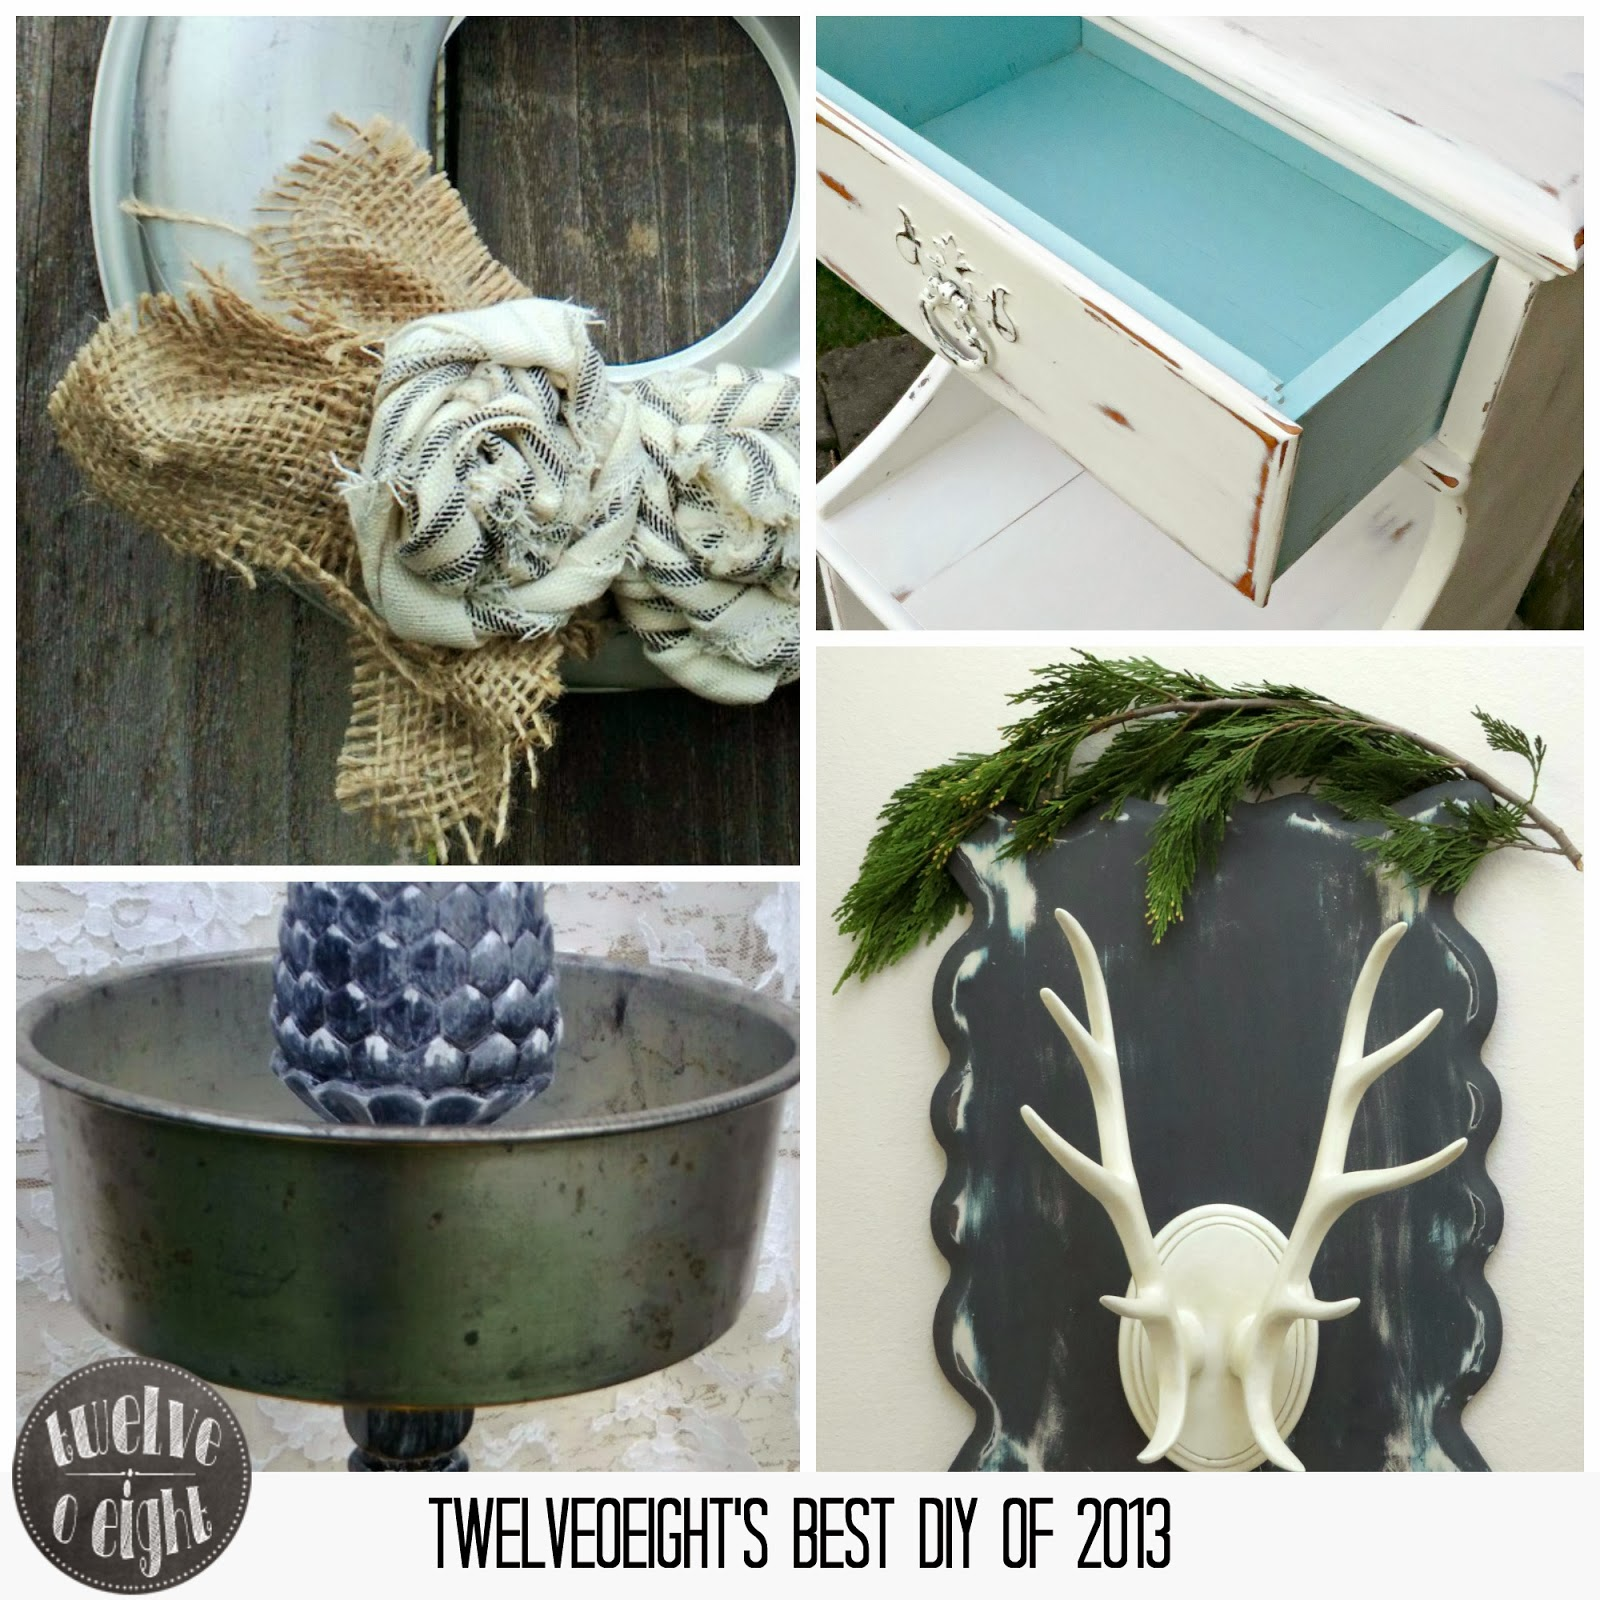 Already Did It Diy Crafts: Favorite Recipes 2013